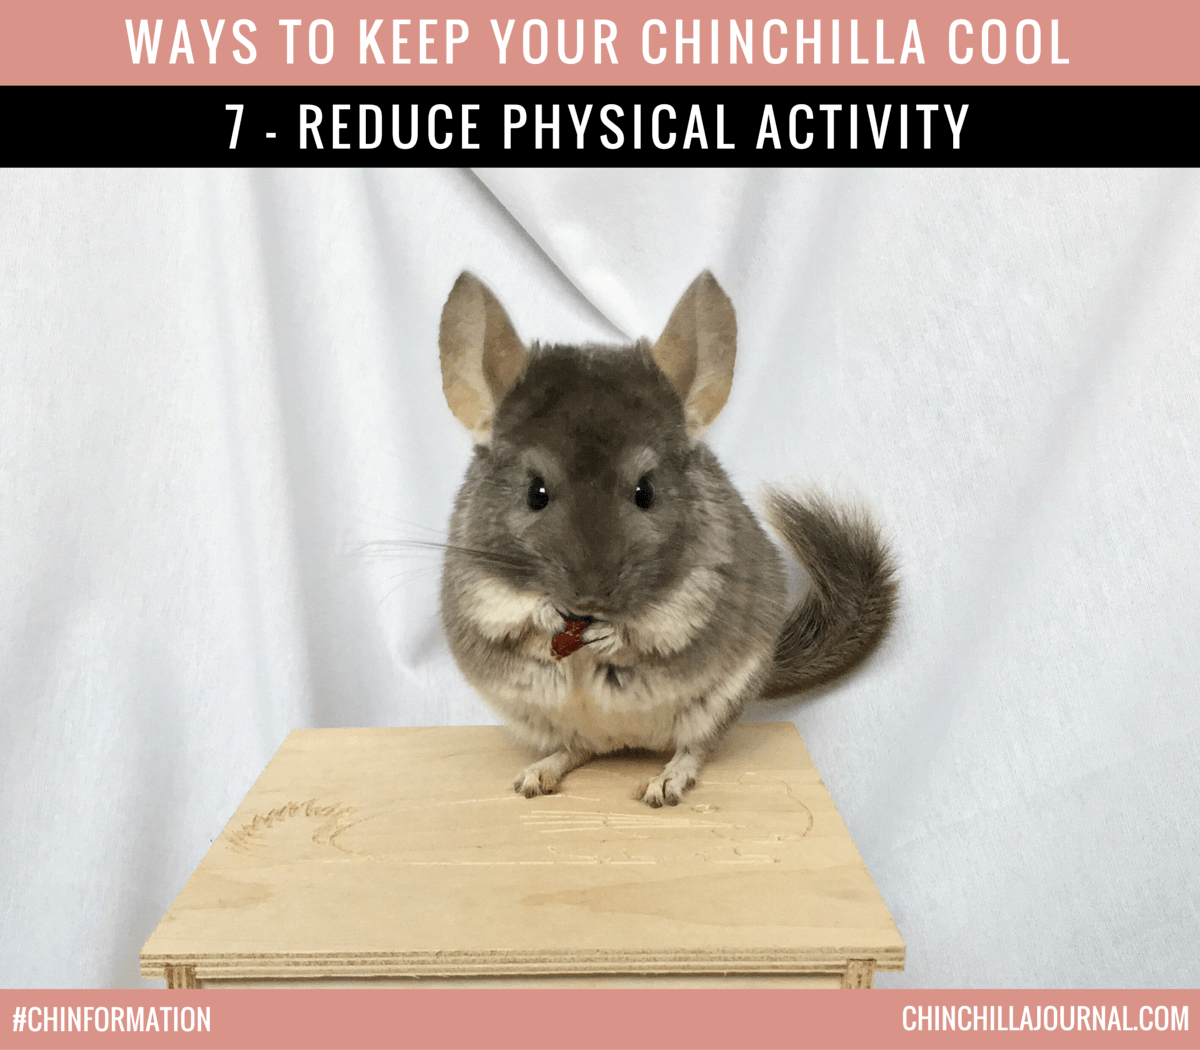 Ways To Keep Your Chinchilla Cool 7 - Reduce Physical Activity